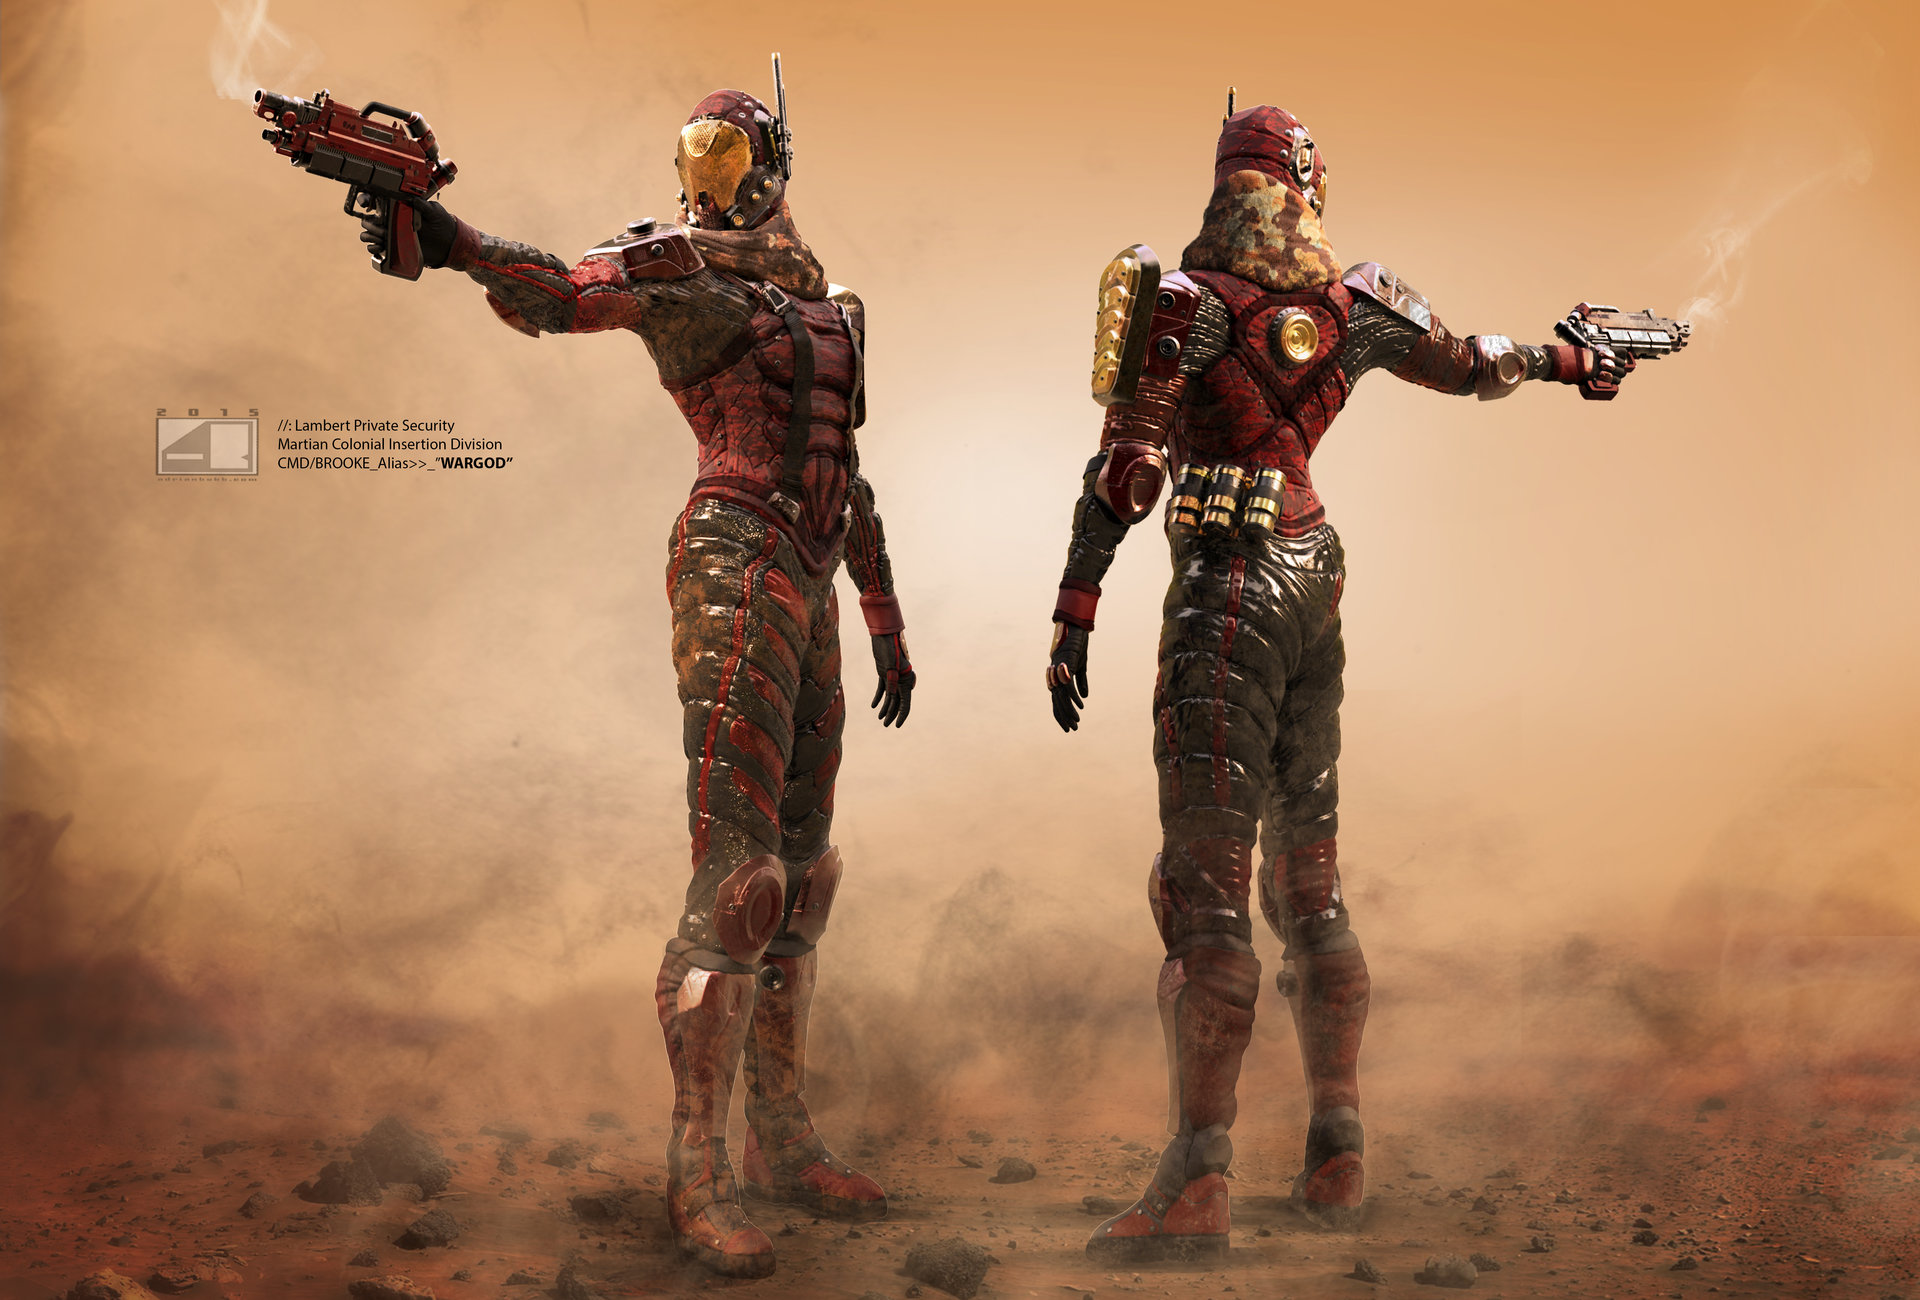 Martian CID Commander (Full Body Color and Texture Render)